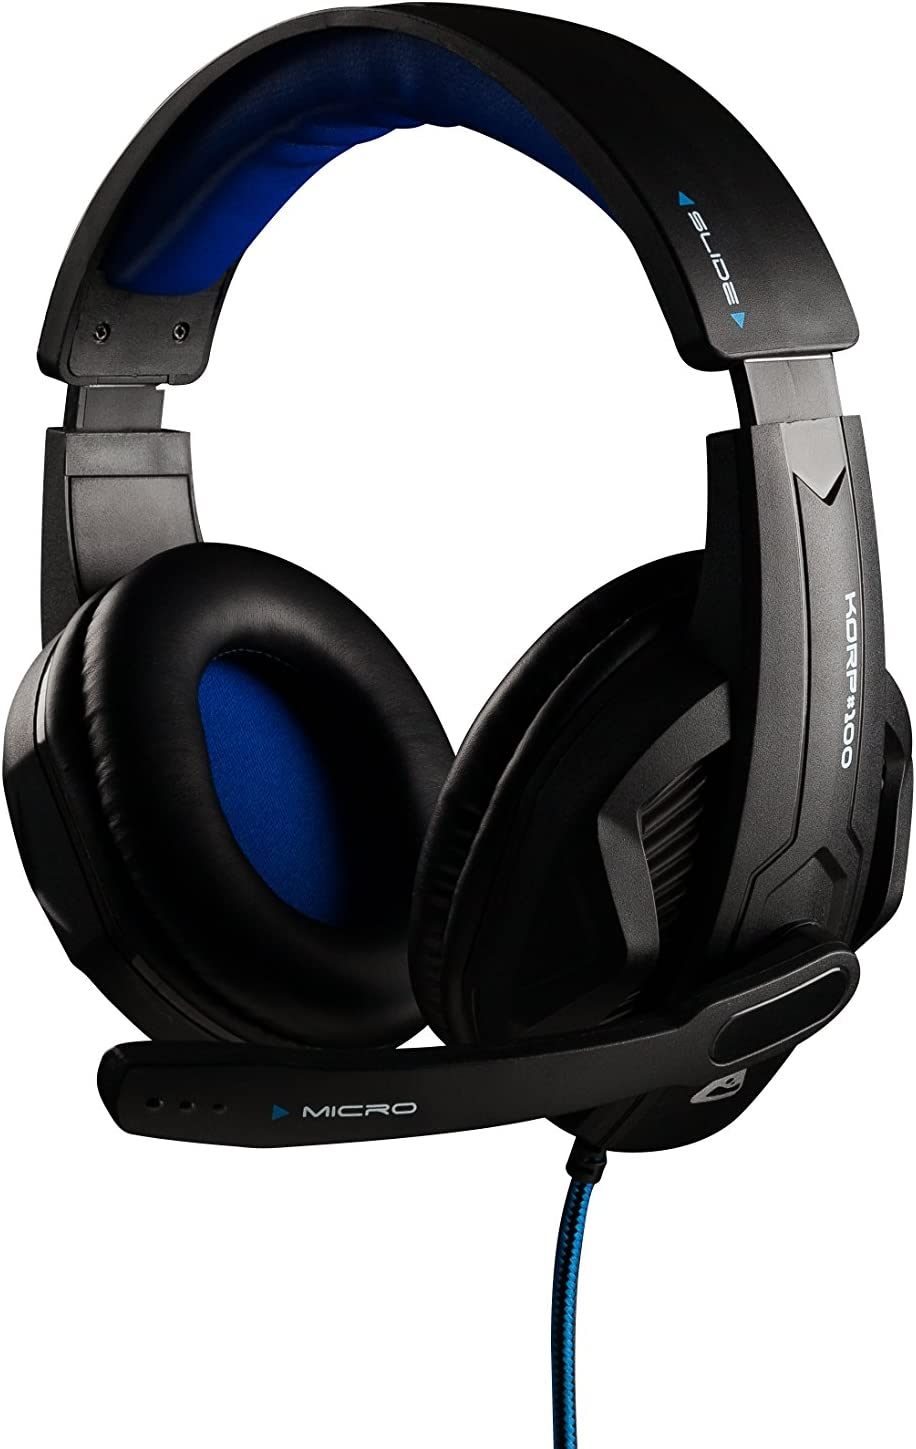 THE G-LAB - KORP 100 - Auriculares Gaming de Alto Rendimiento- Compatible PS4, PC & Xbox One - Confort - Negro